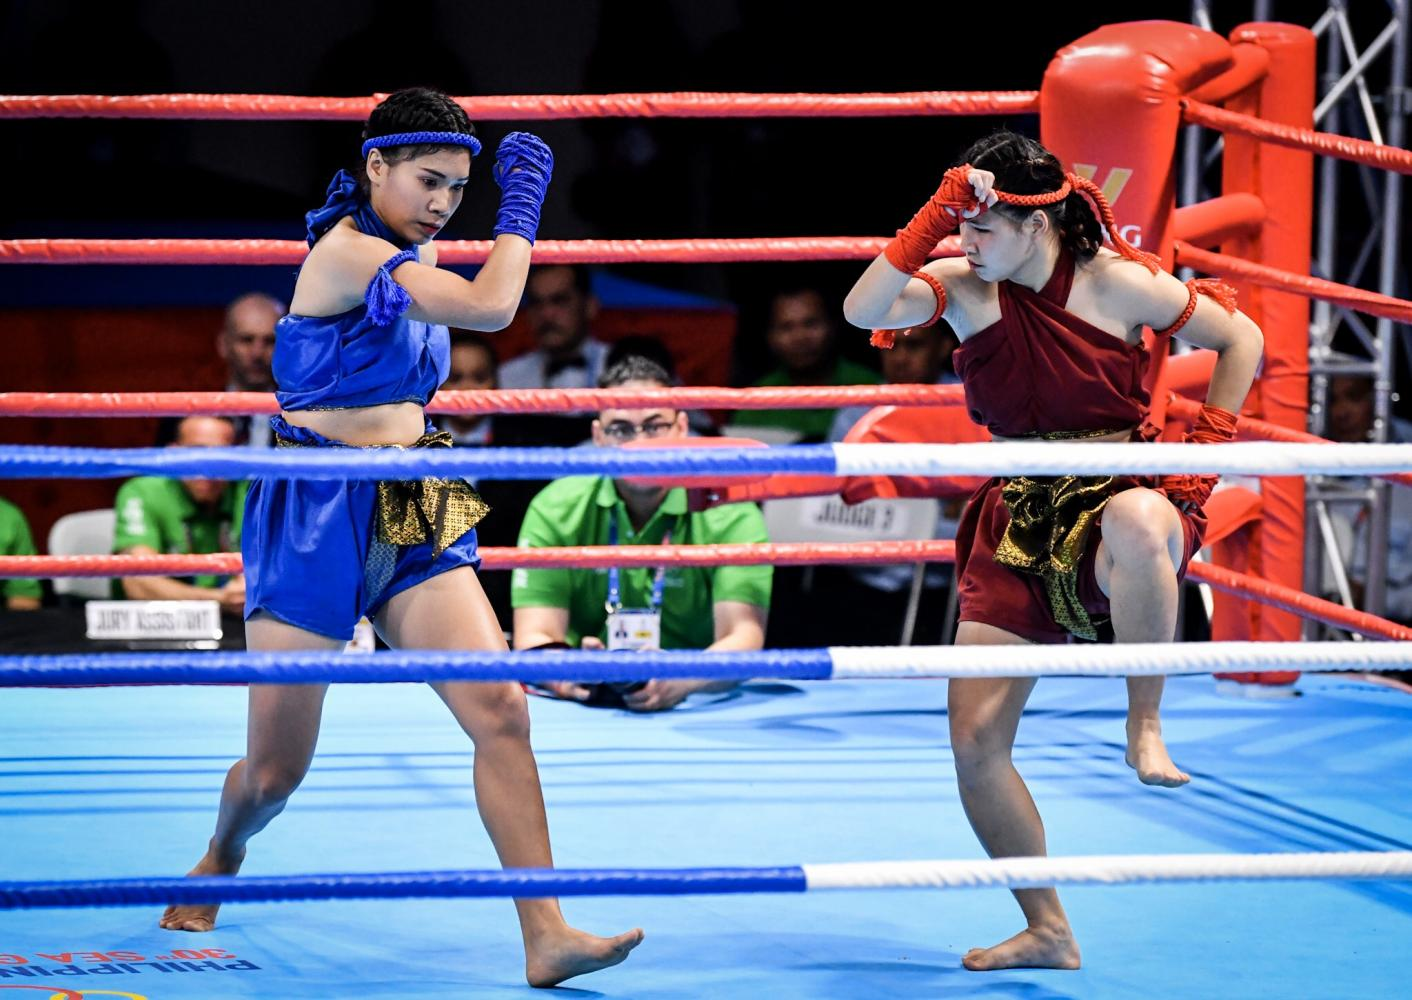 Thanawan Thongduang (right) and Ruchira Wongsriwo perform during the final of the waikru mai muaythai competition.